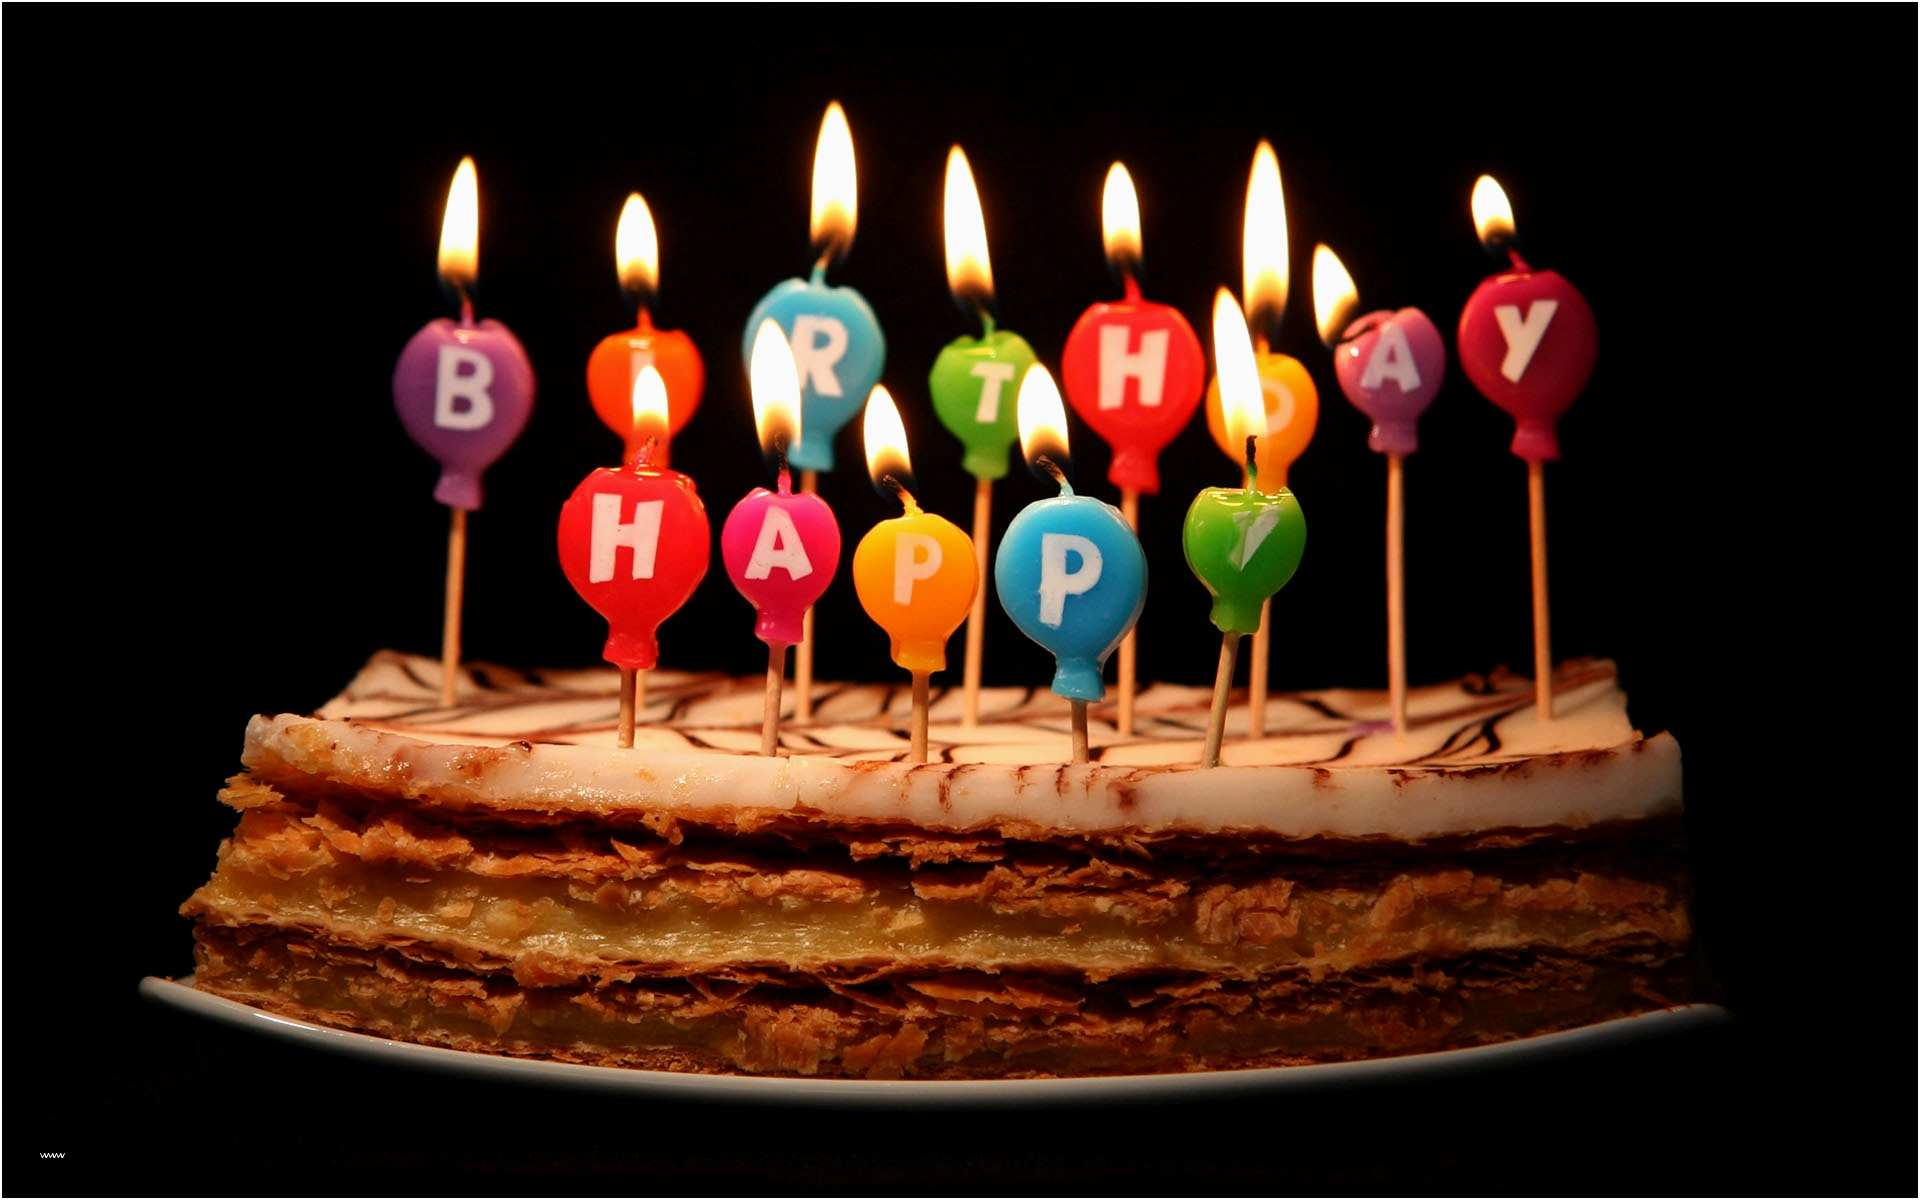 bday photos ; happy-birthday-cake-hd-images-awesome-happy-bday-images-idealstalist-of-happy-birthday-cake-hd-images